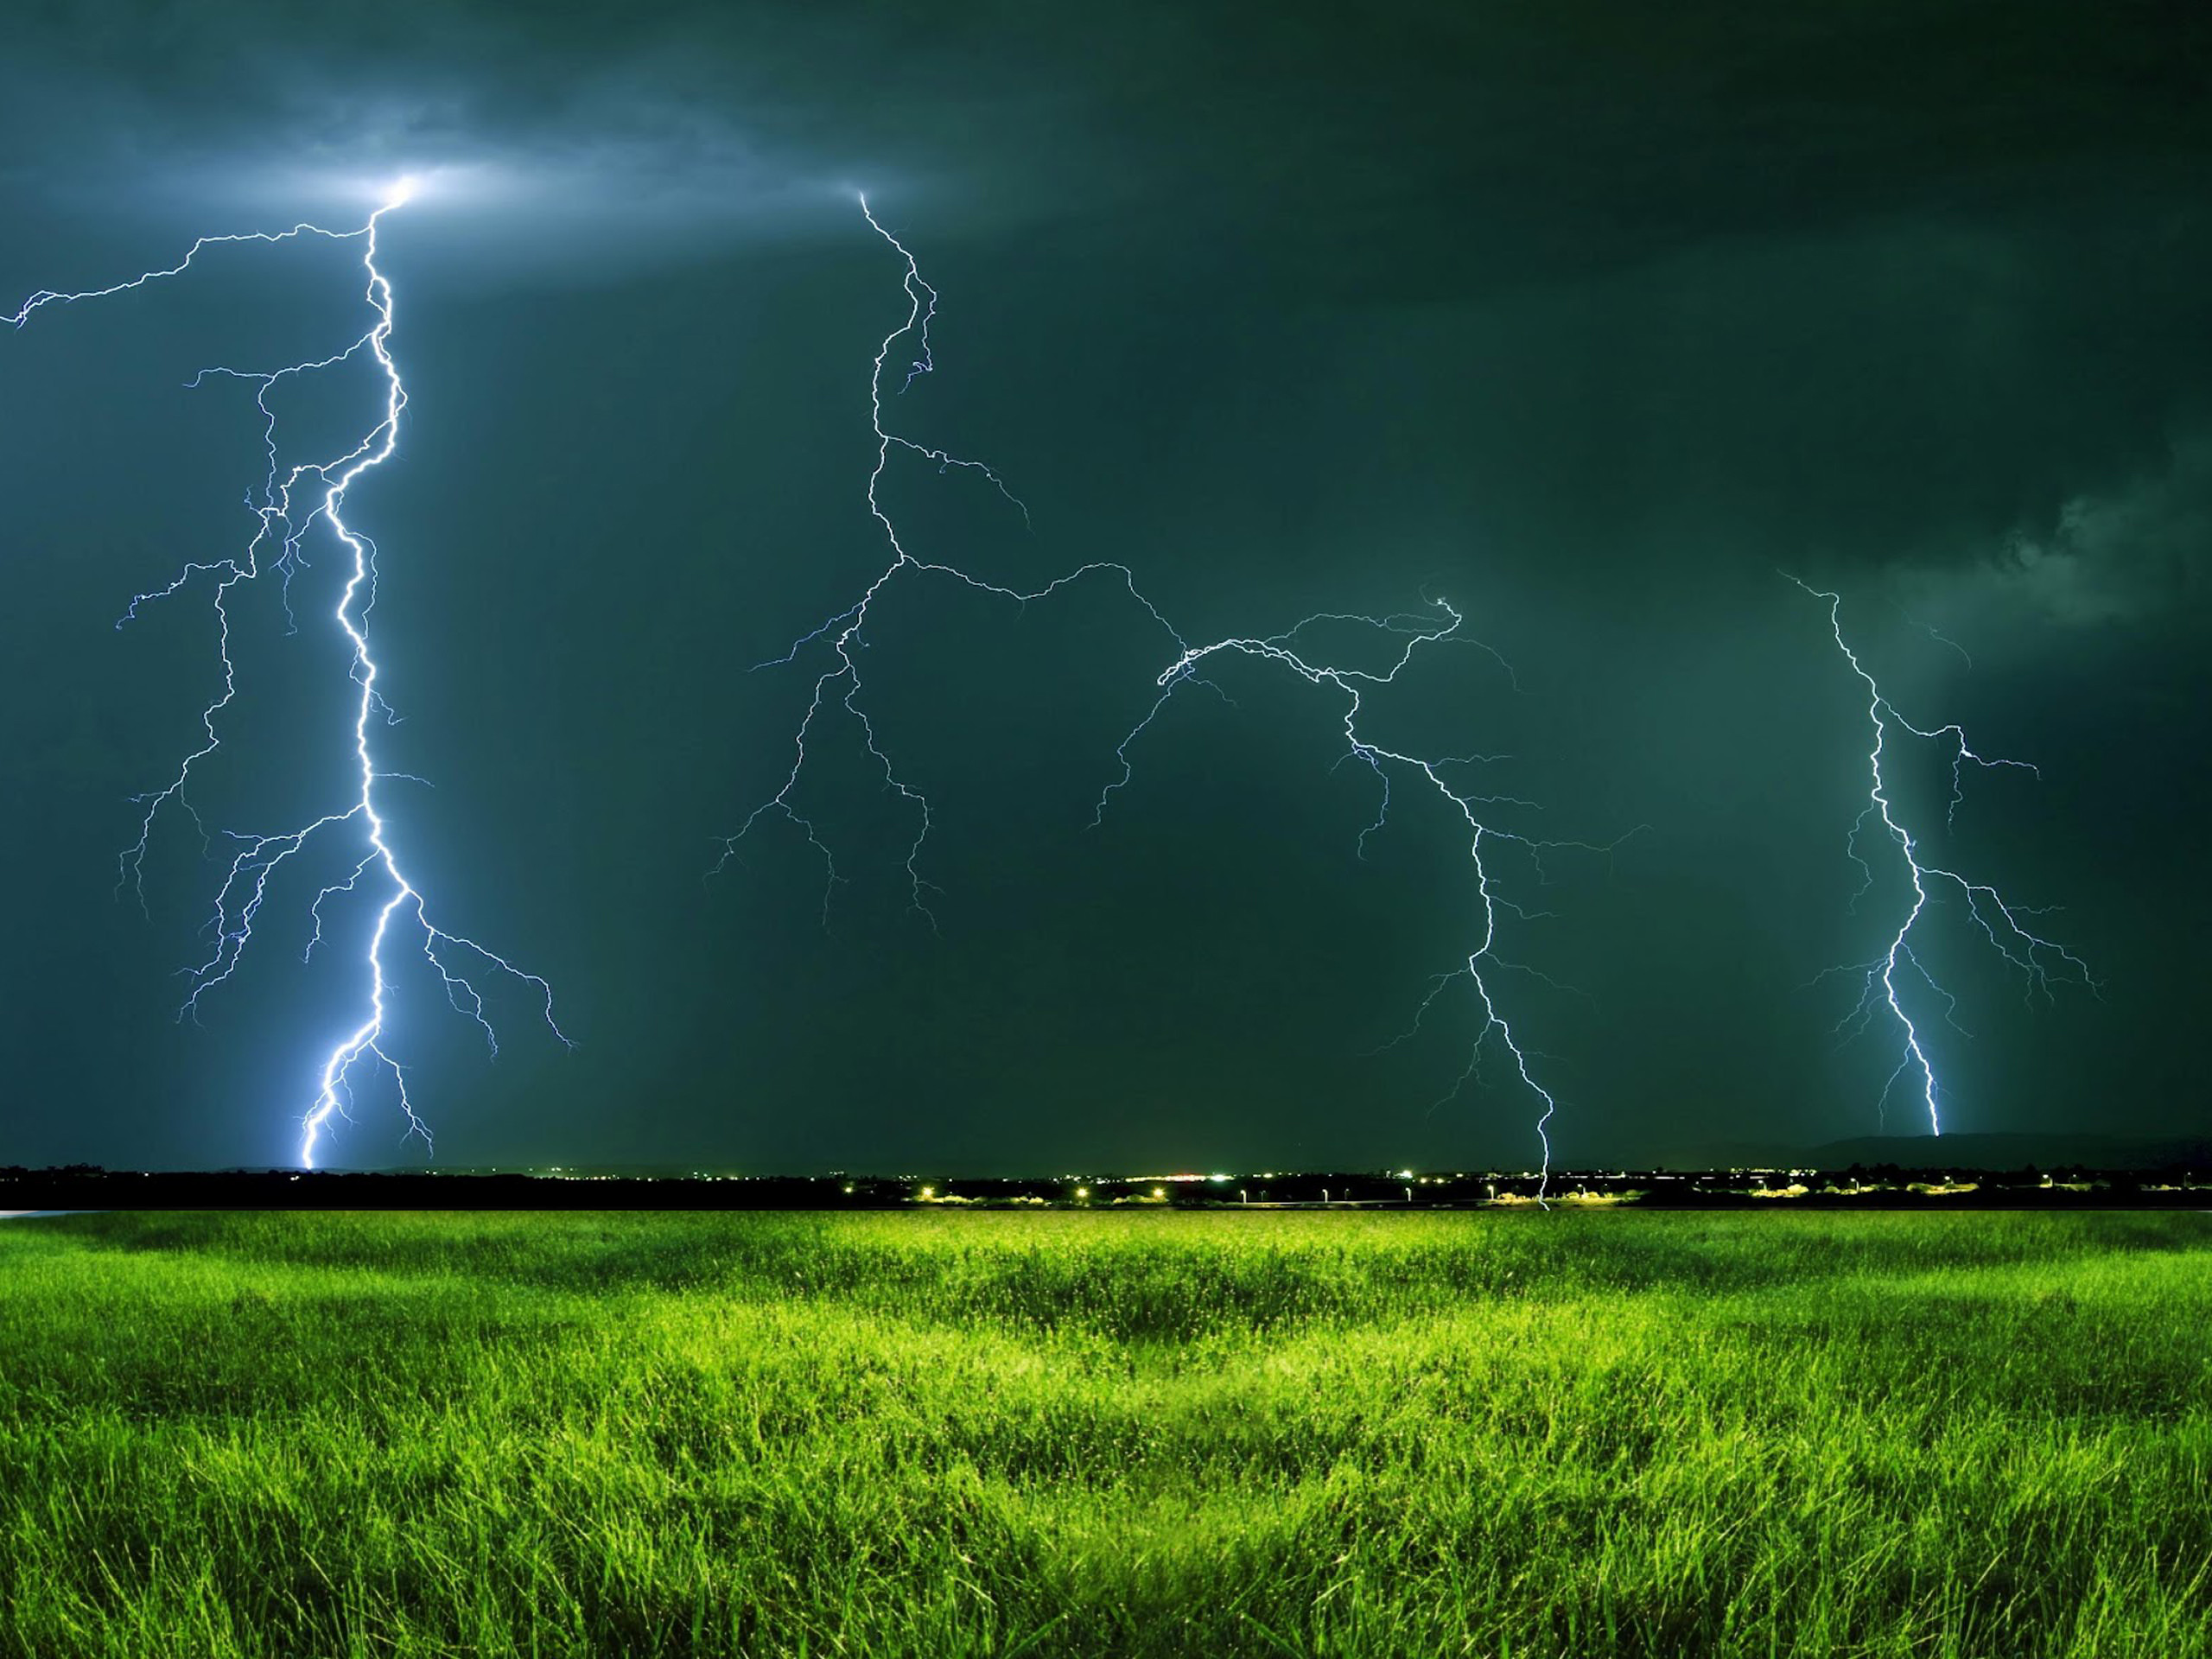 2560x1920 Thunder and Lightning Storms | Natural Thunder lightning HD Wallpapers  [1920x1080] ( longwallpapers .